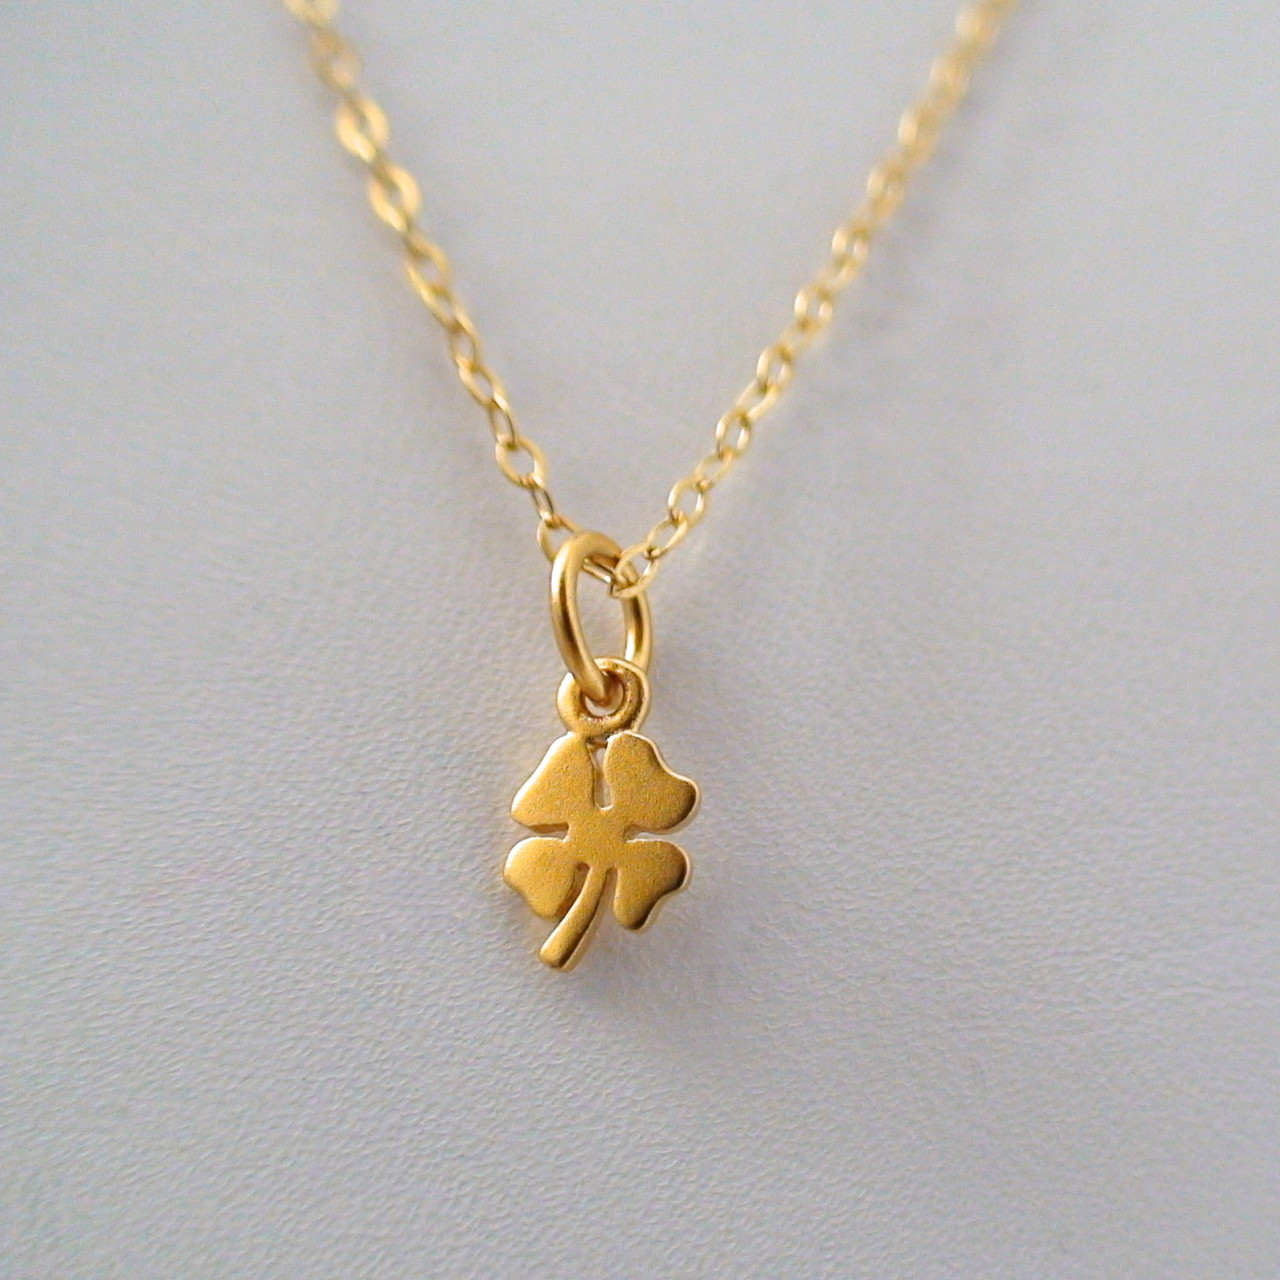 necklace leaf pendant by attic clover four product original rose gold